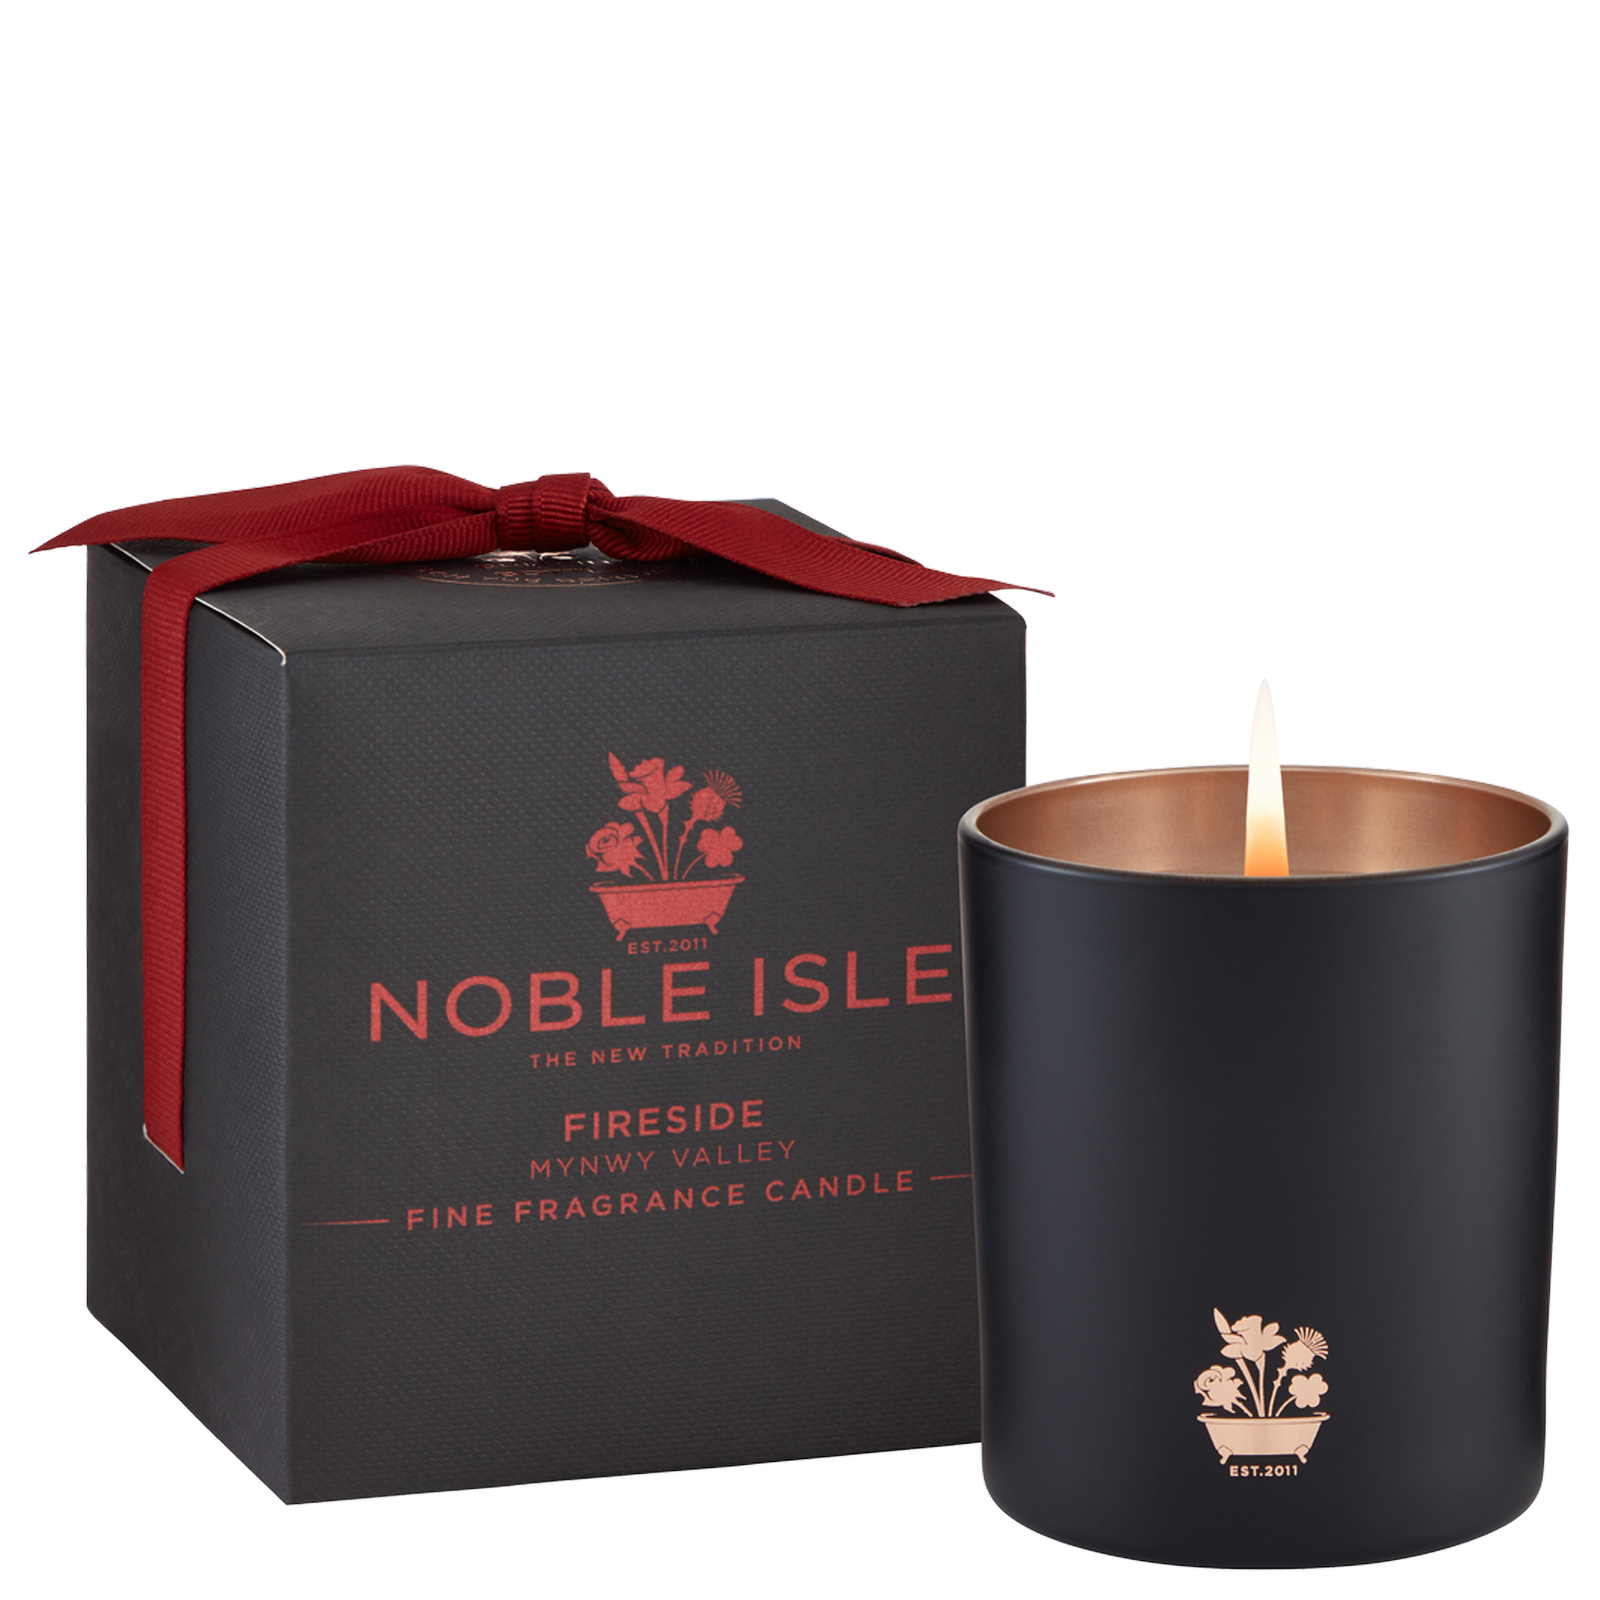 Noble Isle Home Fragrance Fireside Fine Fragrance Candle 200g